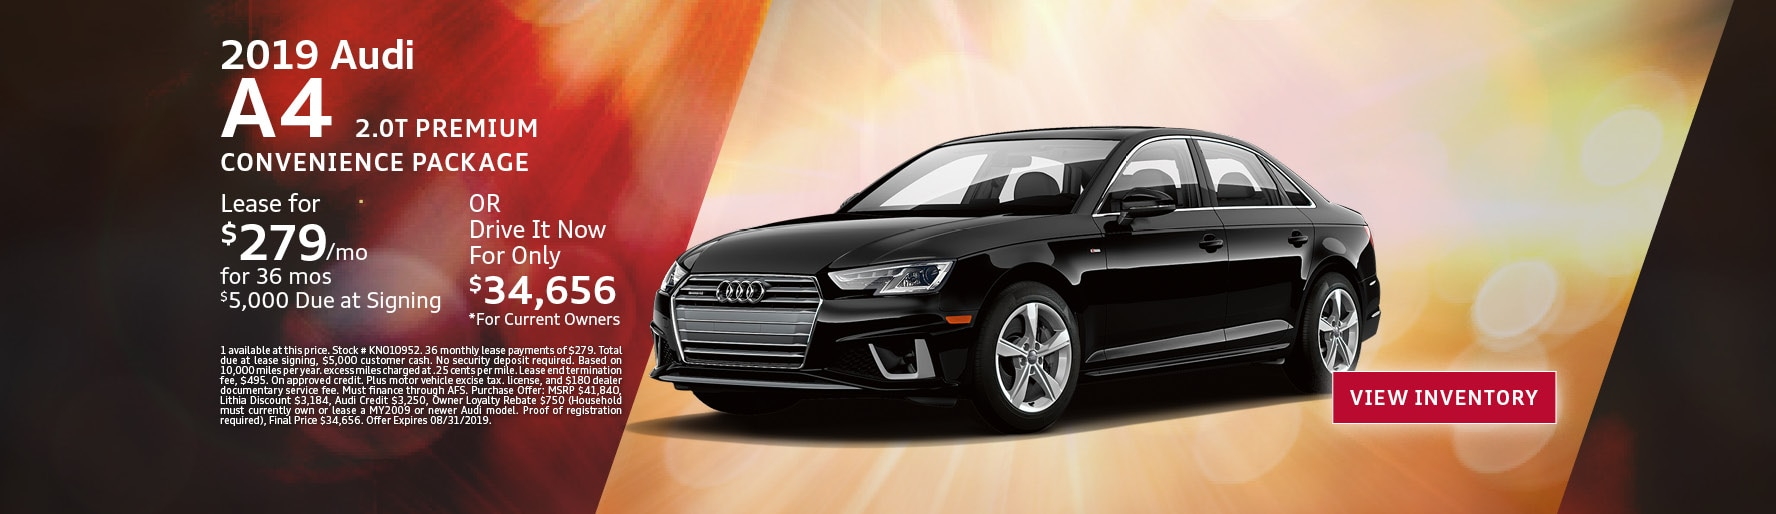 Audi Des Moines | New & Used Audi Dealer in Des Moines Iowa